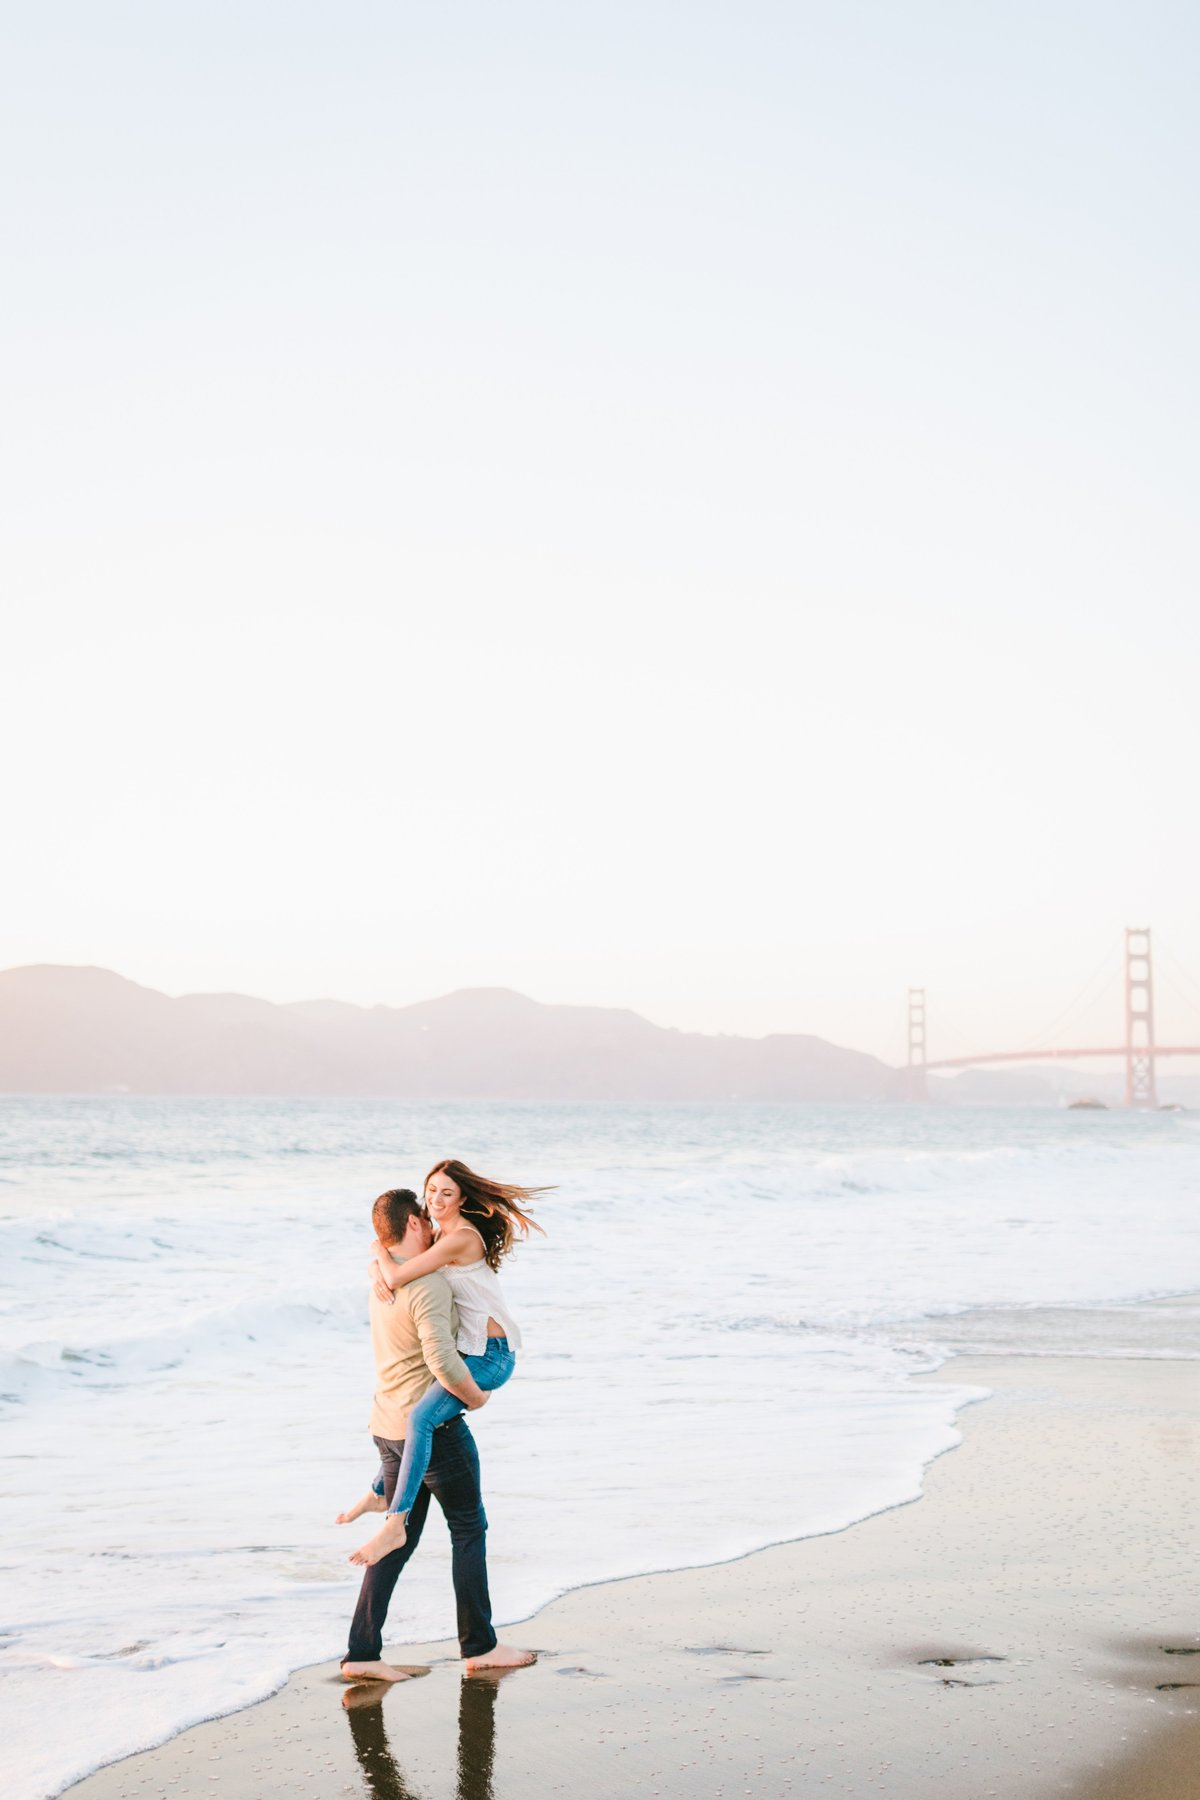 Best California Engagement Photographer-Jodee Debes Photography-110